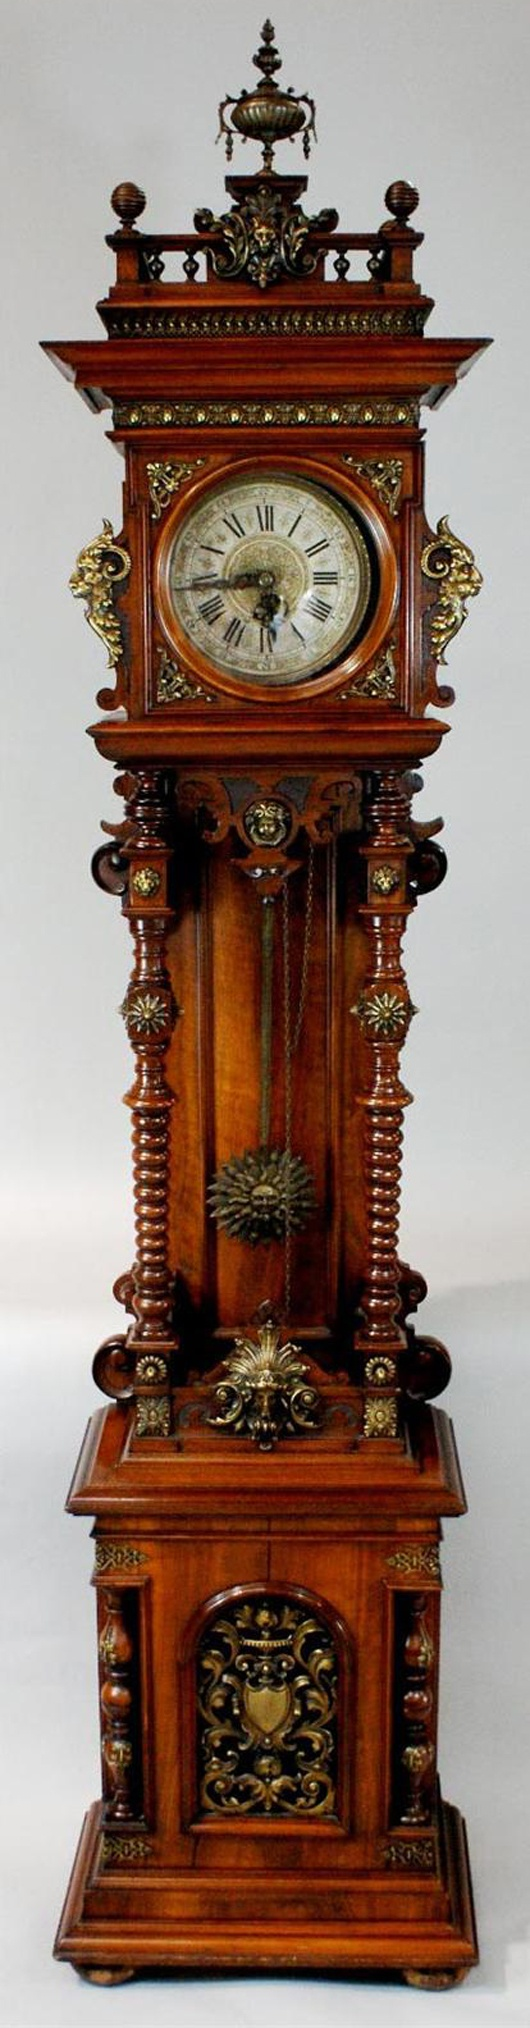 Exquisitely carved and bronze-embellished tall-case grandfather clock. Don Presley Auction image.